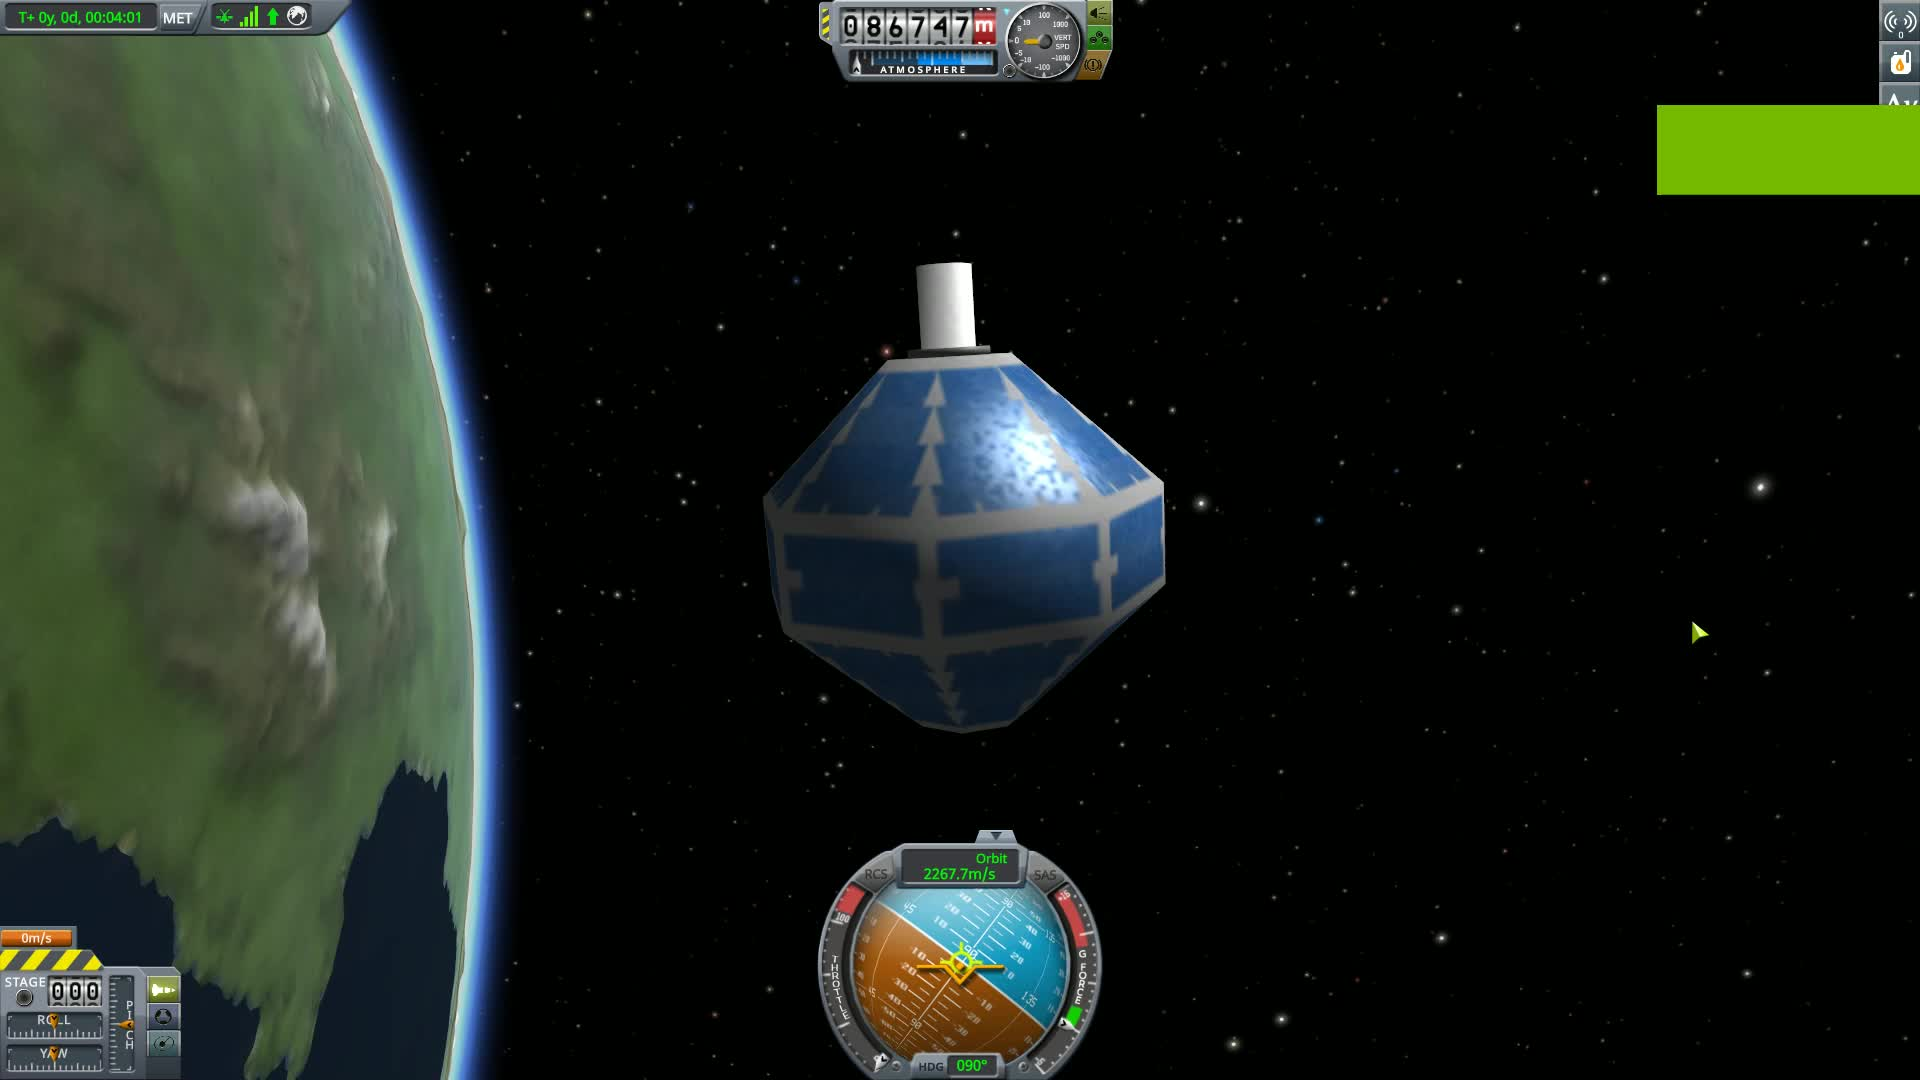 kerbalspaceprogram, Kerbal Space Program 2019.05.04 - 10.53.55.02 GIFs